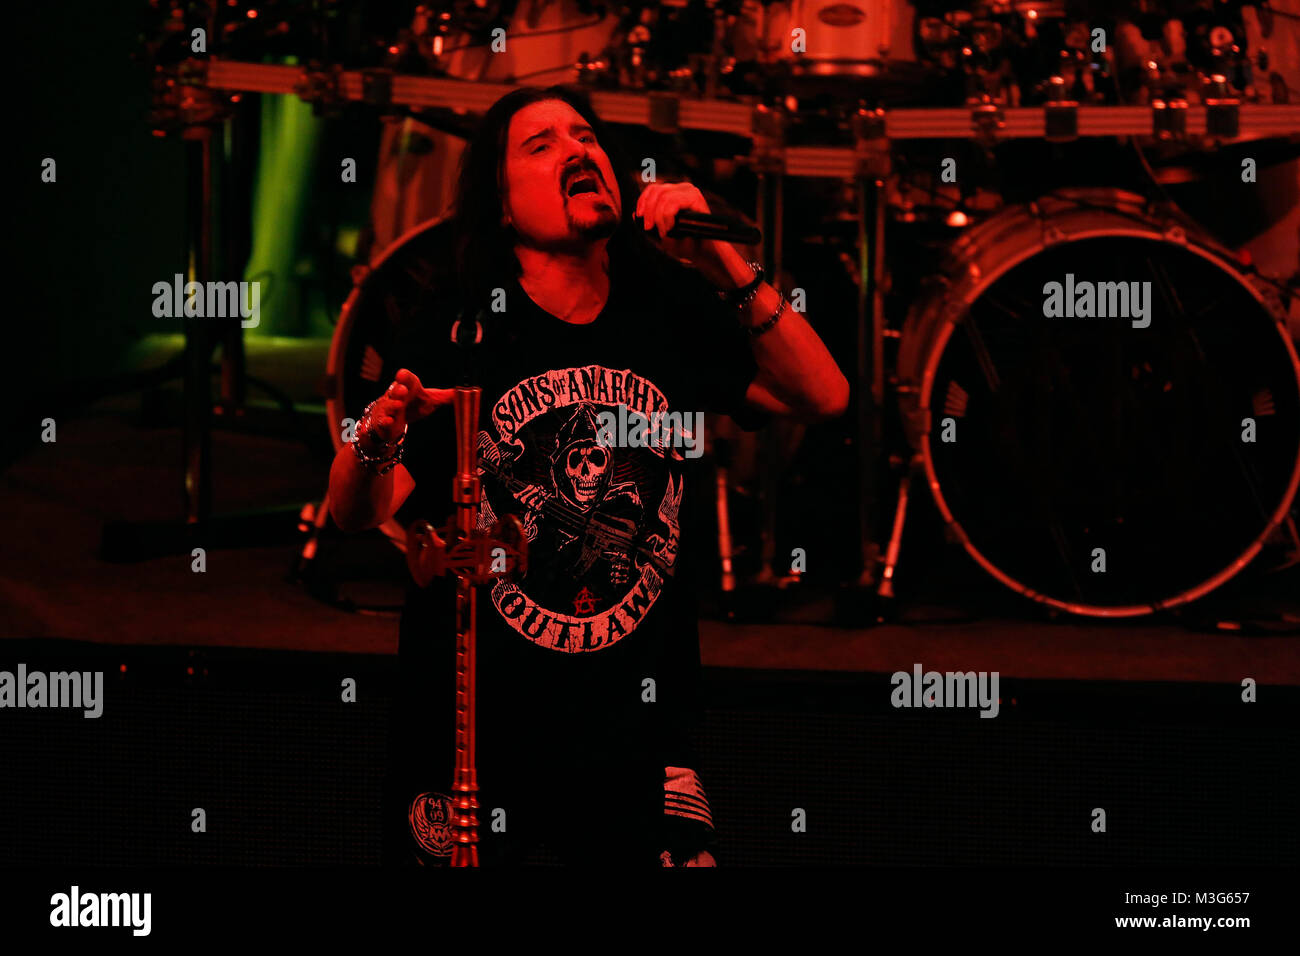 James Labrie Stock Photos & James Labrie Stock Images - Alamy